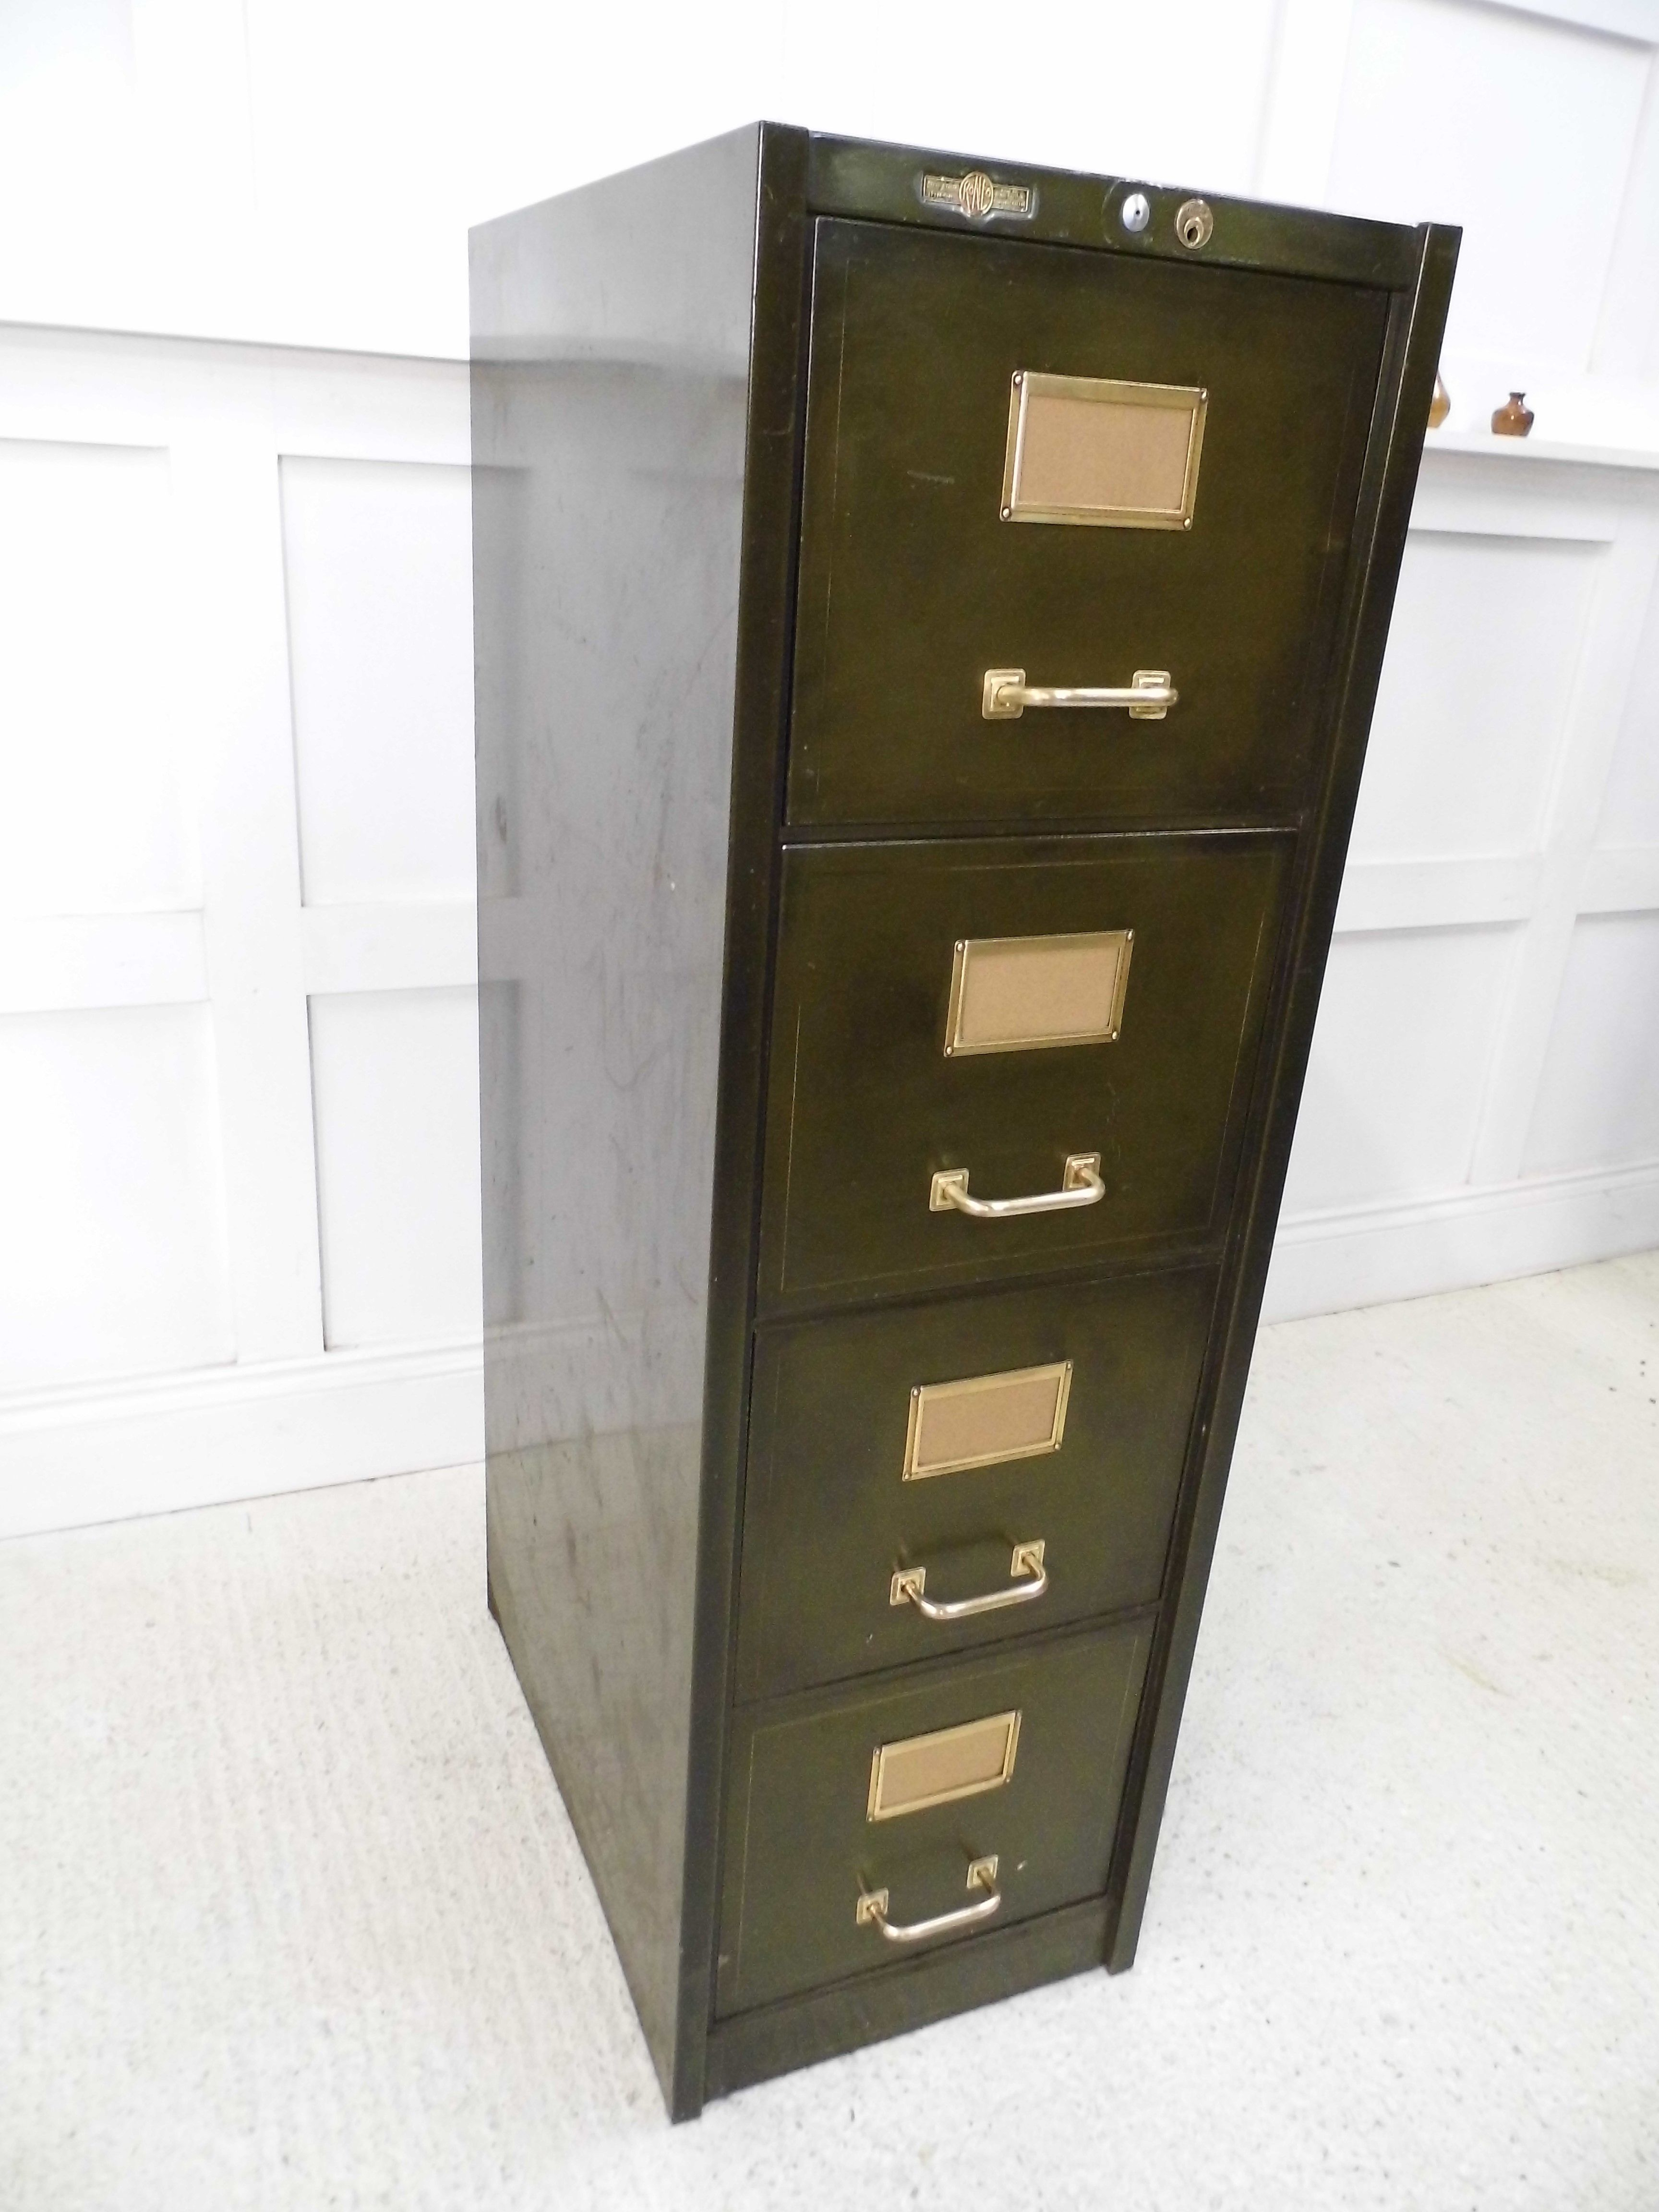 Vintage Industrial Chic Retro Roneo Heavy Duty Filing Cabinet Storage Chest 1930s Ex Military Poli Filing Cabinet Vintage Filing Cabinet Filing Cabinet Storage Metal filing cabinets for sale